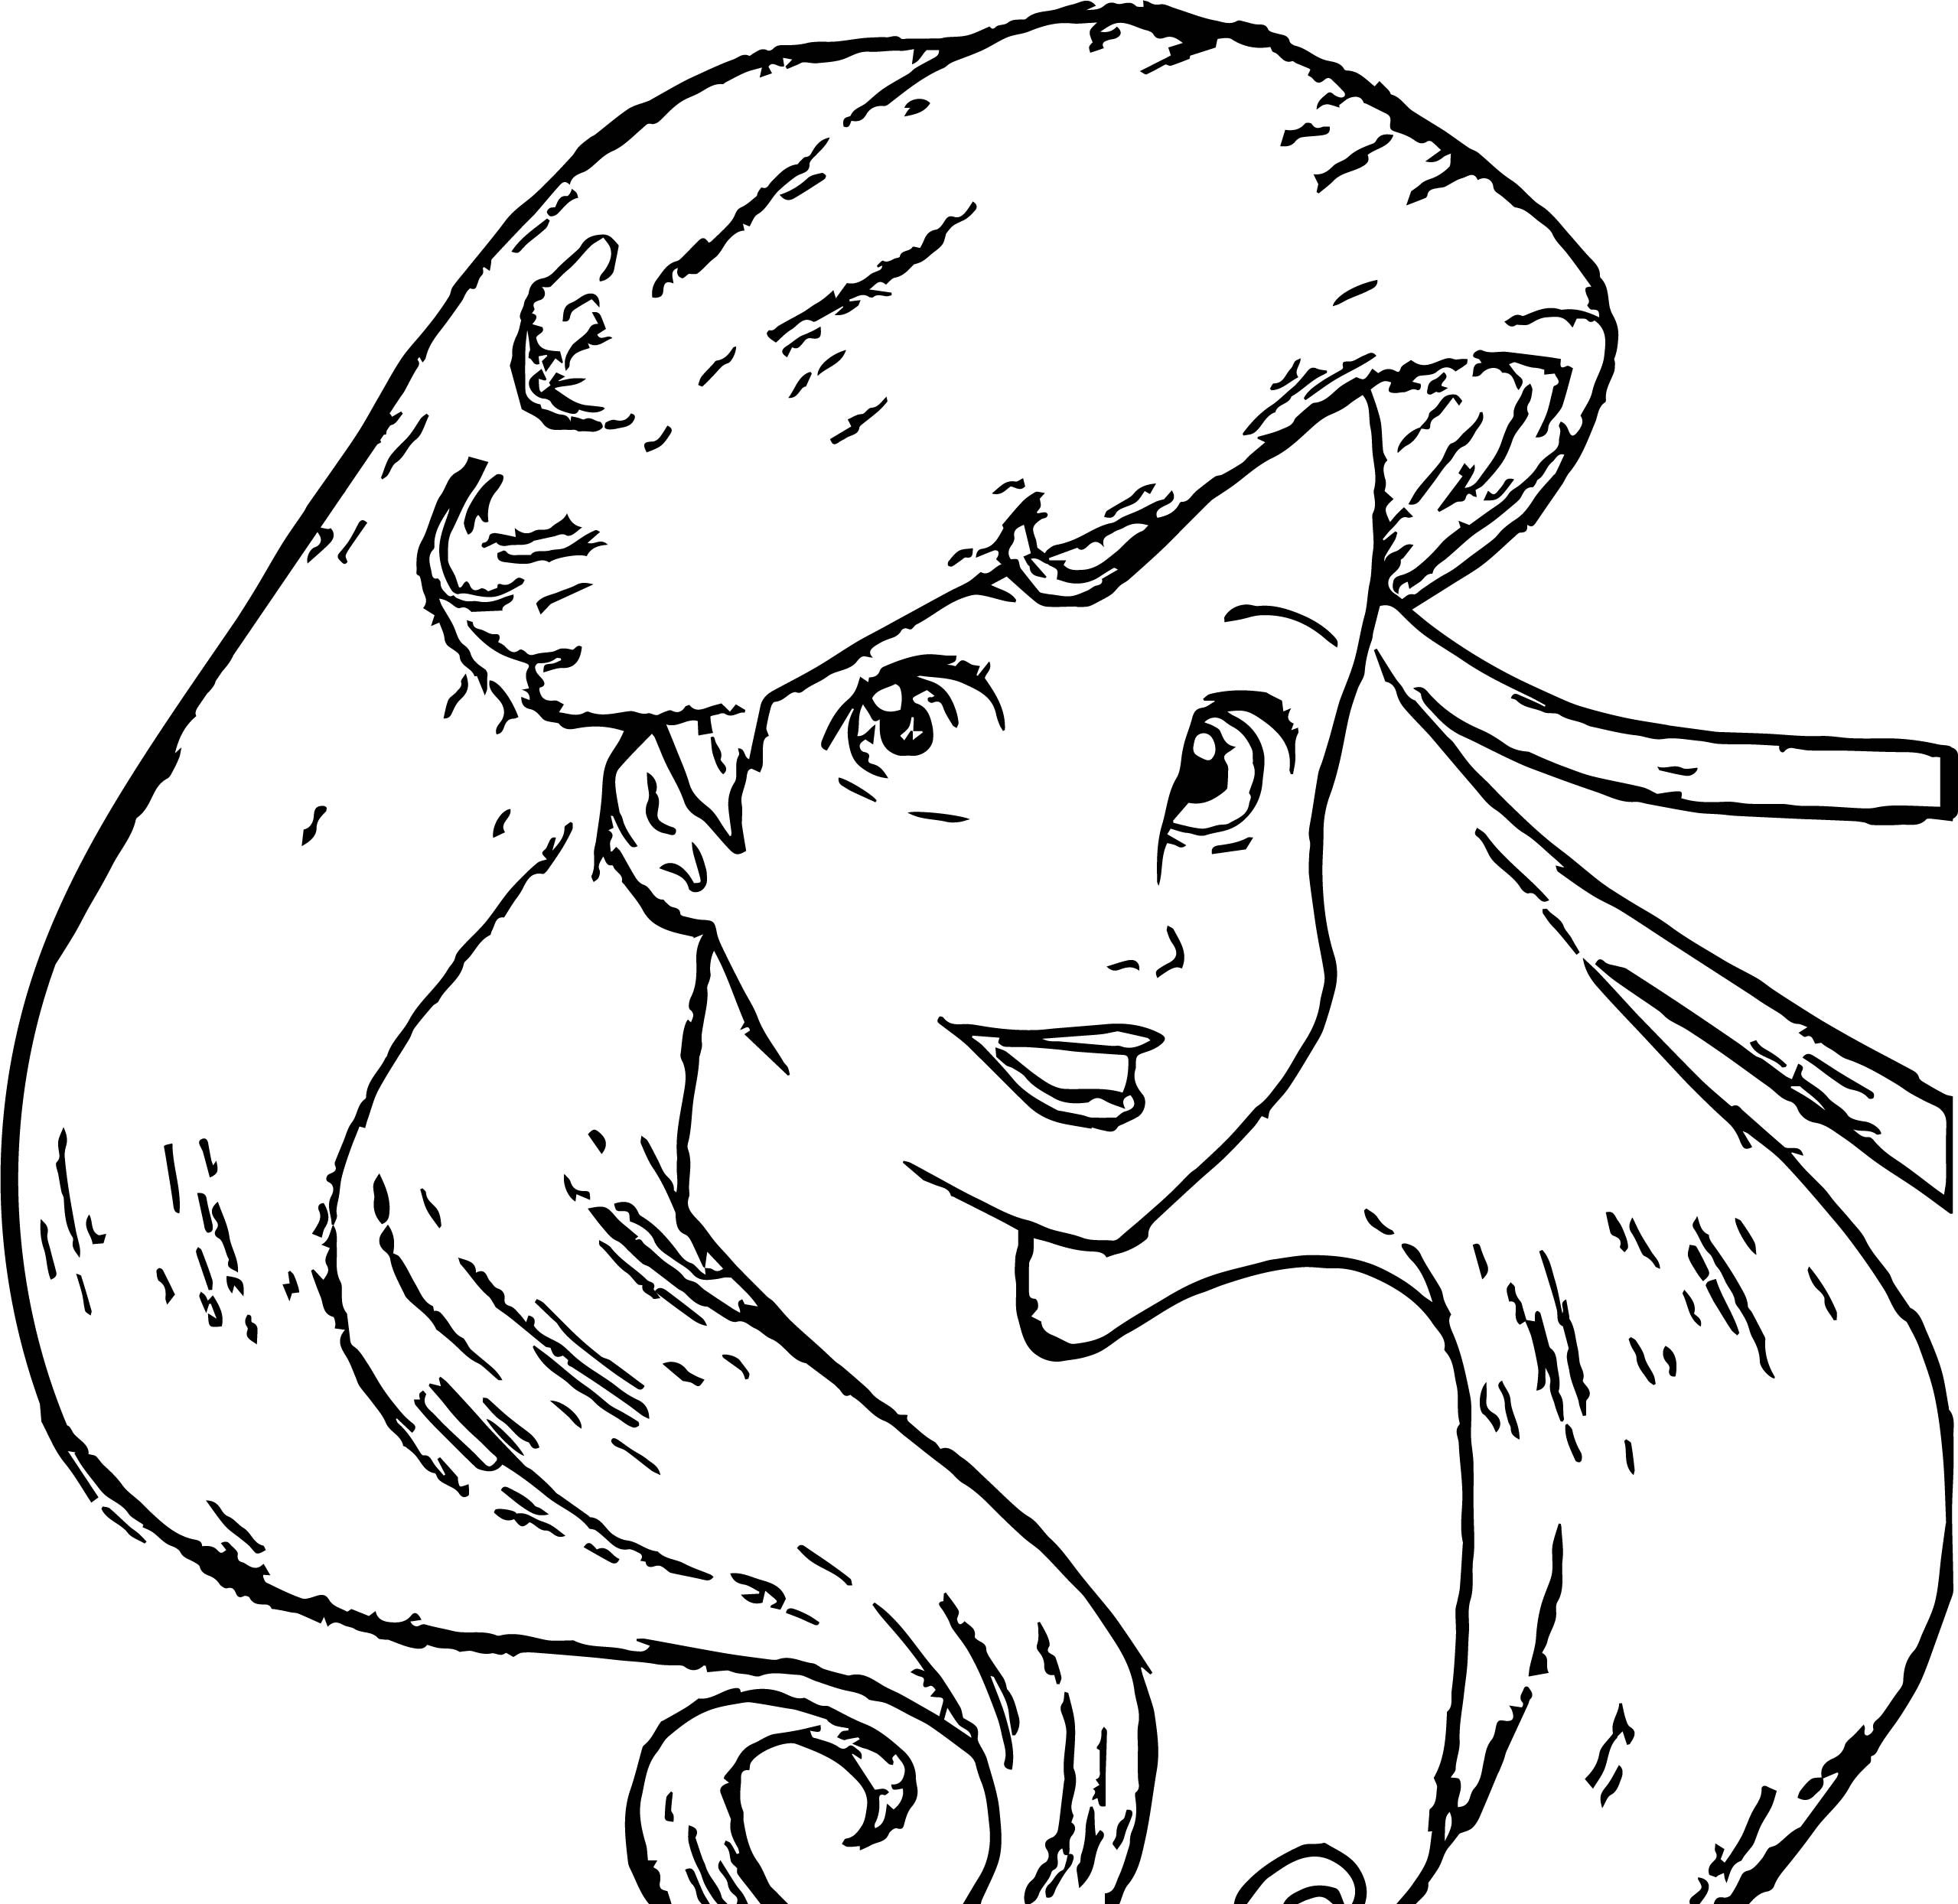 Disney Princess Ariel The Little Mermaid Coloring Page ...